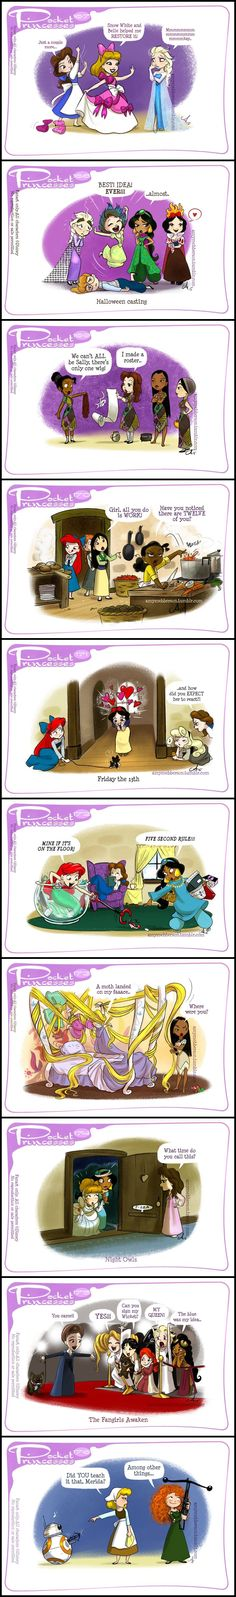 Pocket Princesses (Part 17) by Amy Mebberson